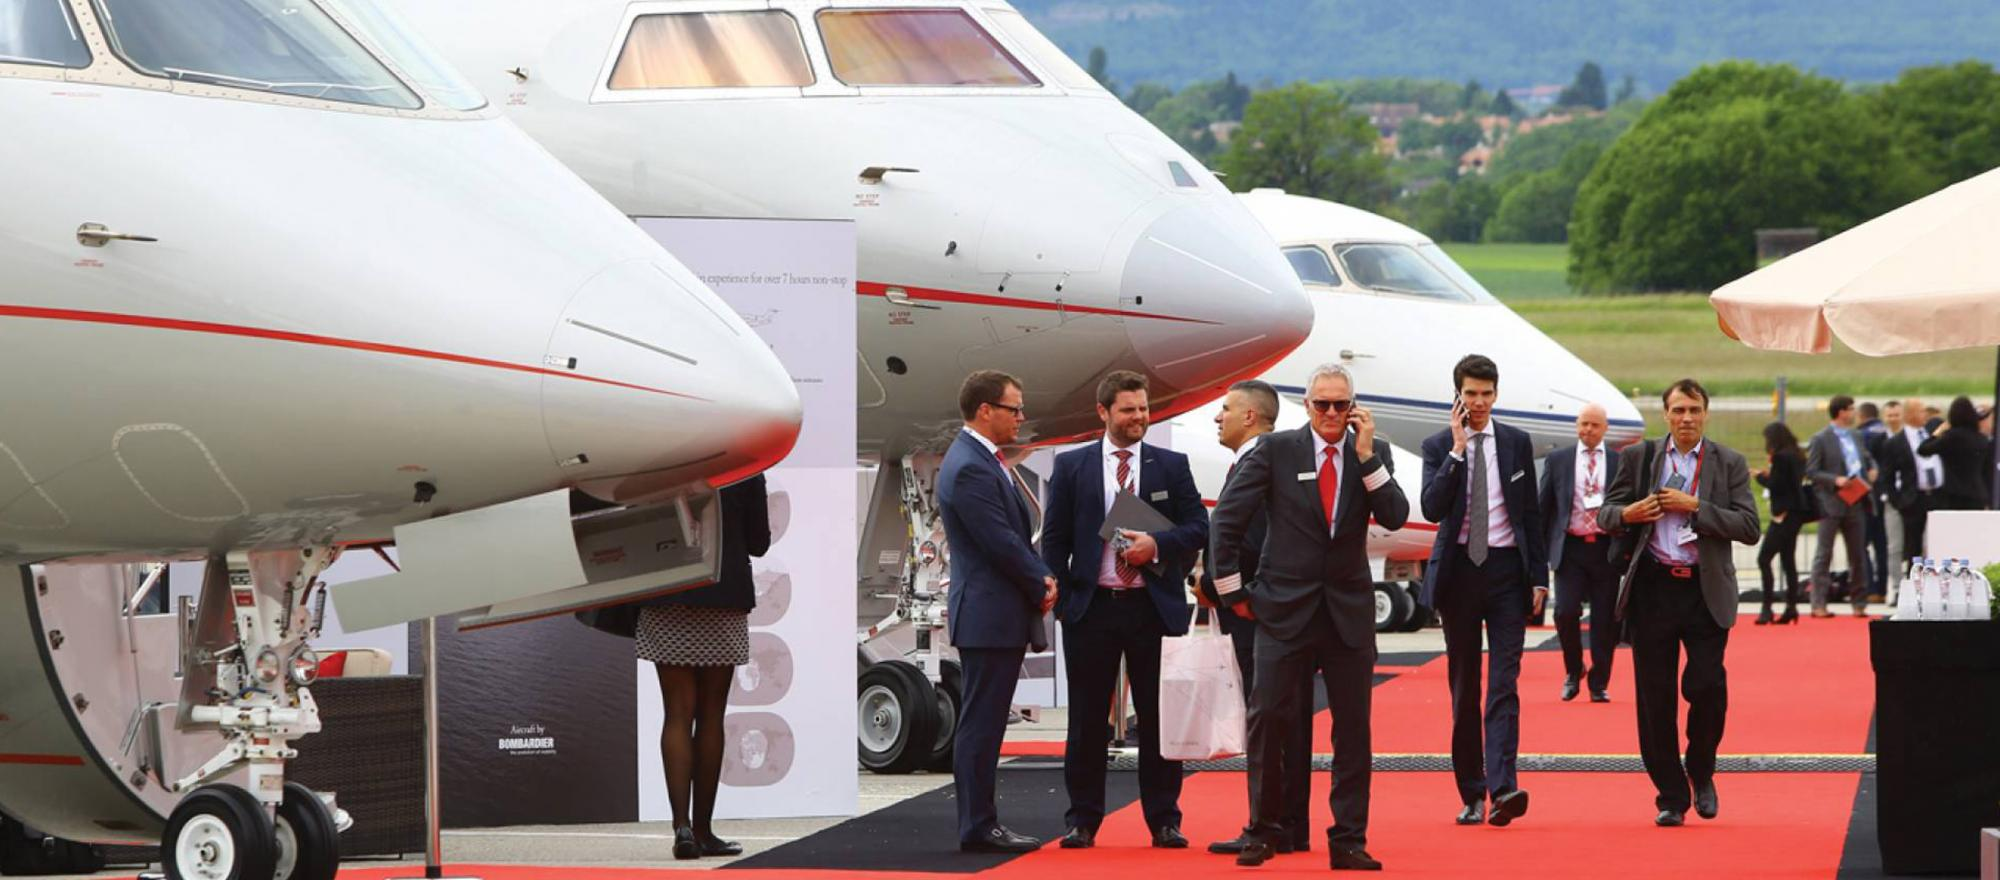 Business jets and people.